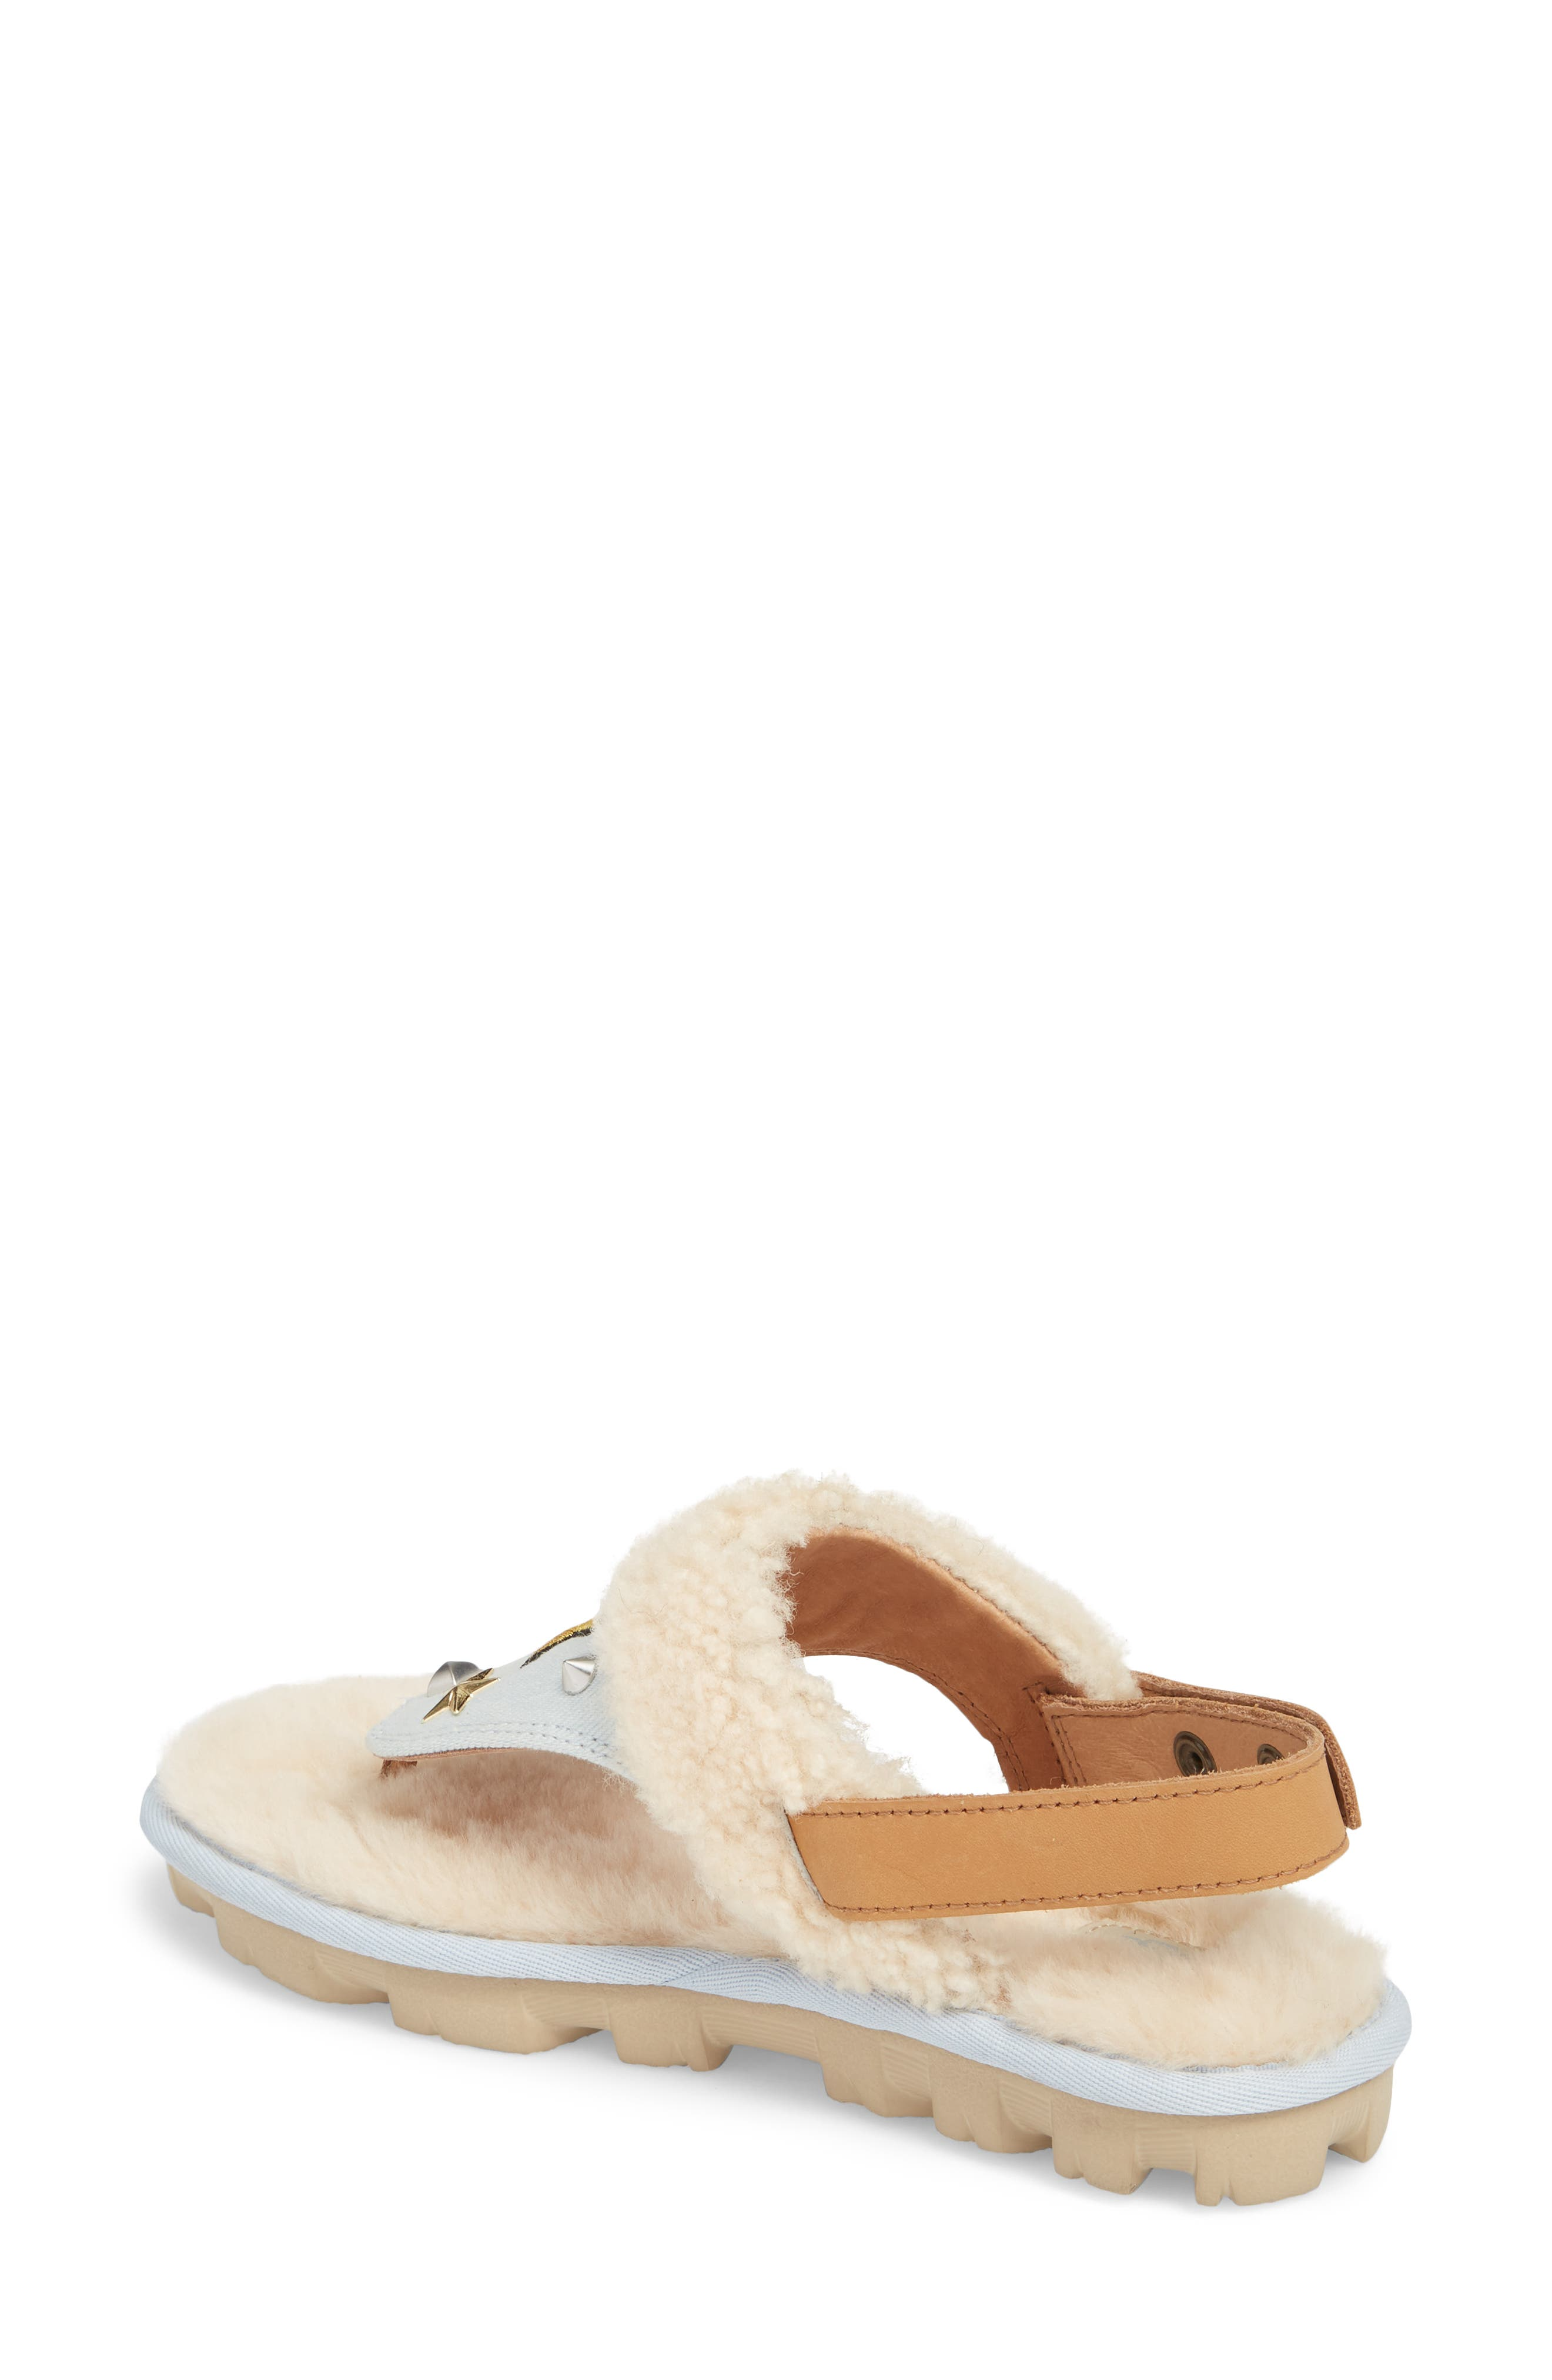 Patch It Slingback Sandal with Genuine Shearling Trim,                             Alternate thumbnail 2, color,                             BLEACH DENIM